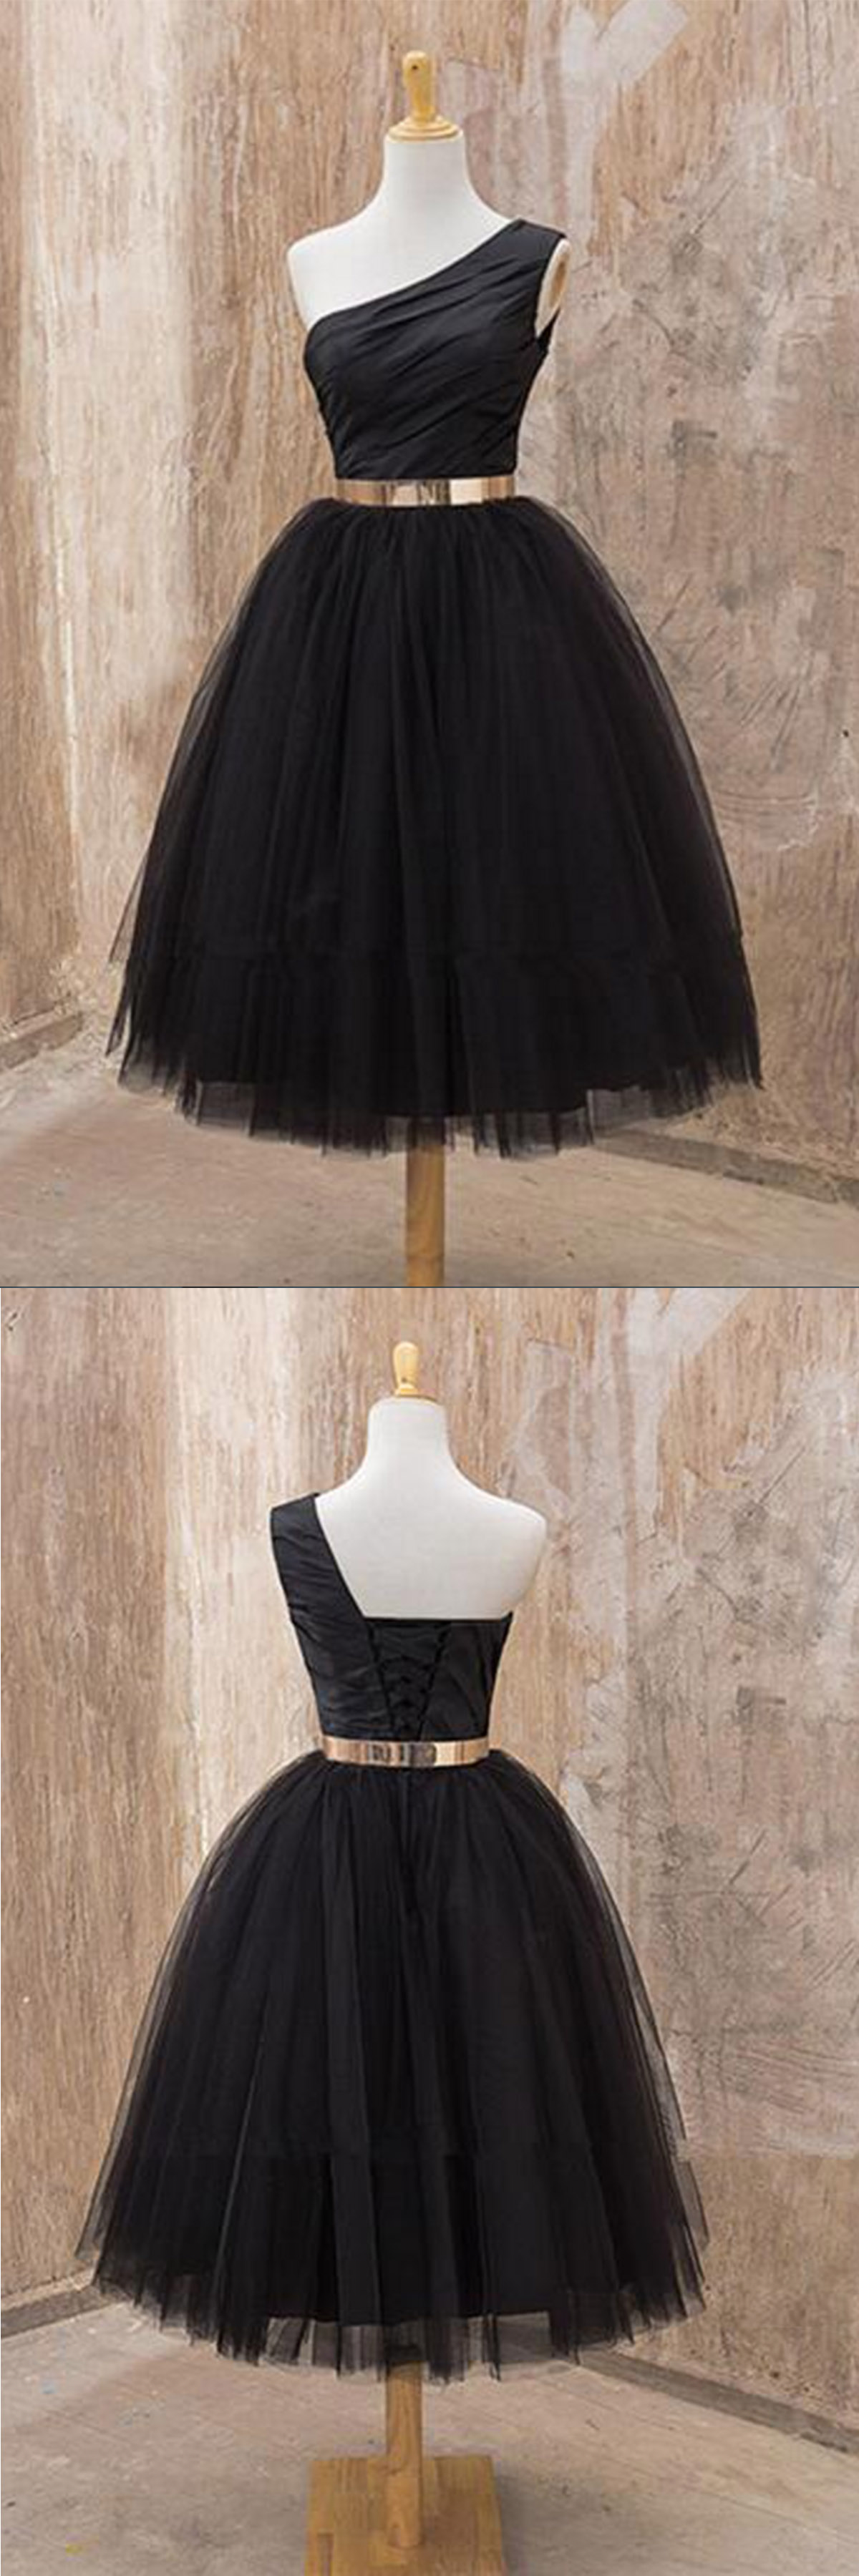 Black tulle one shoulder A-line mid-length party dress with gold belt